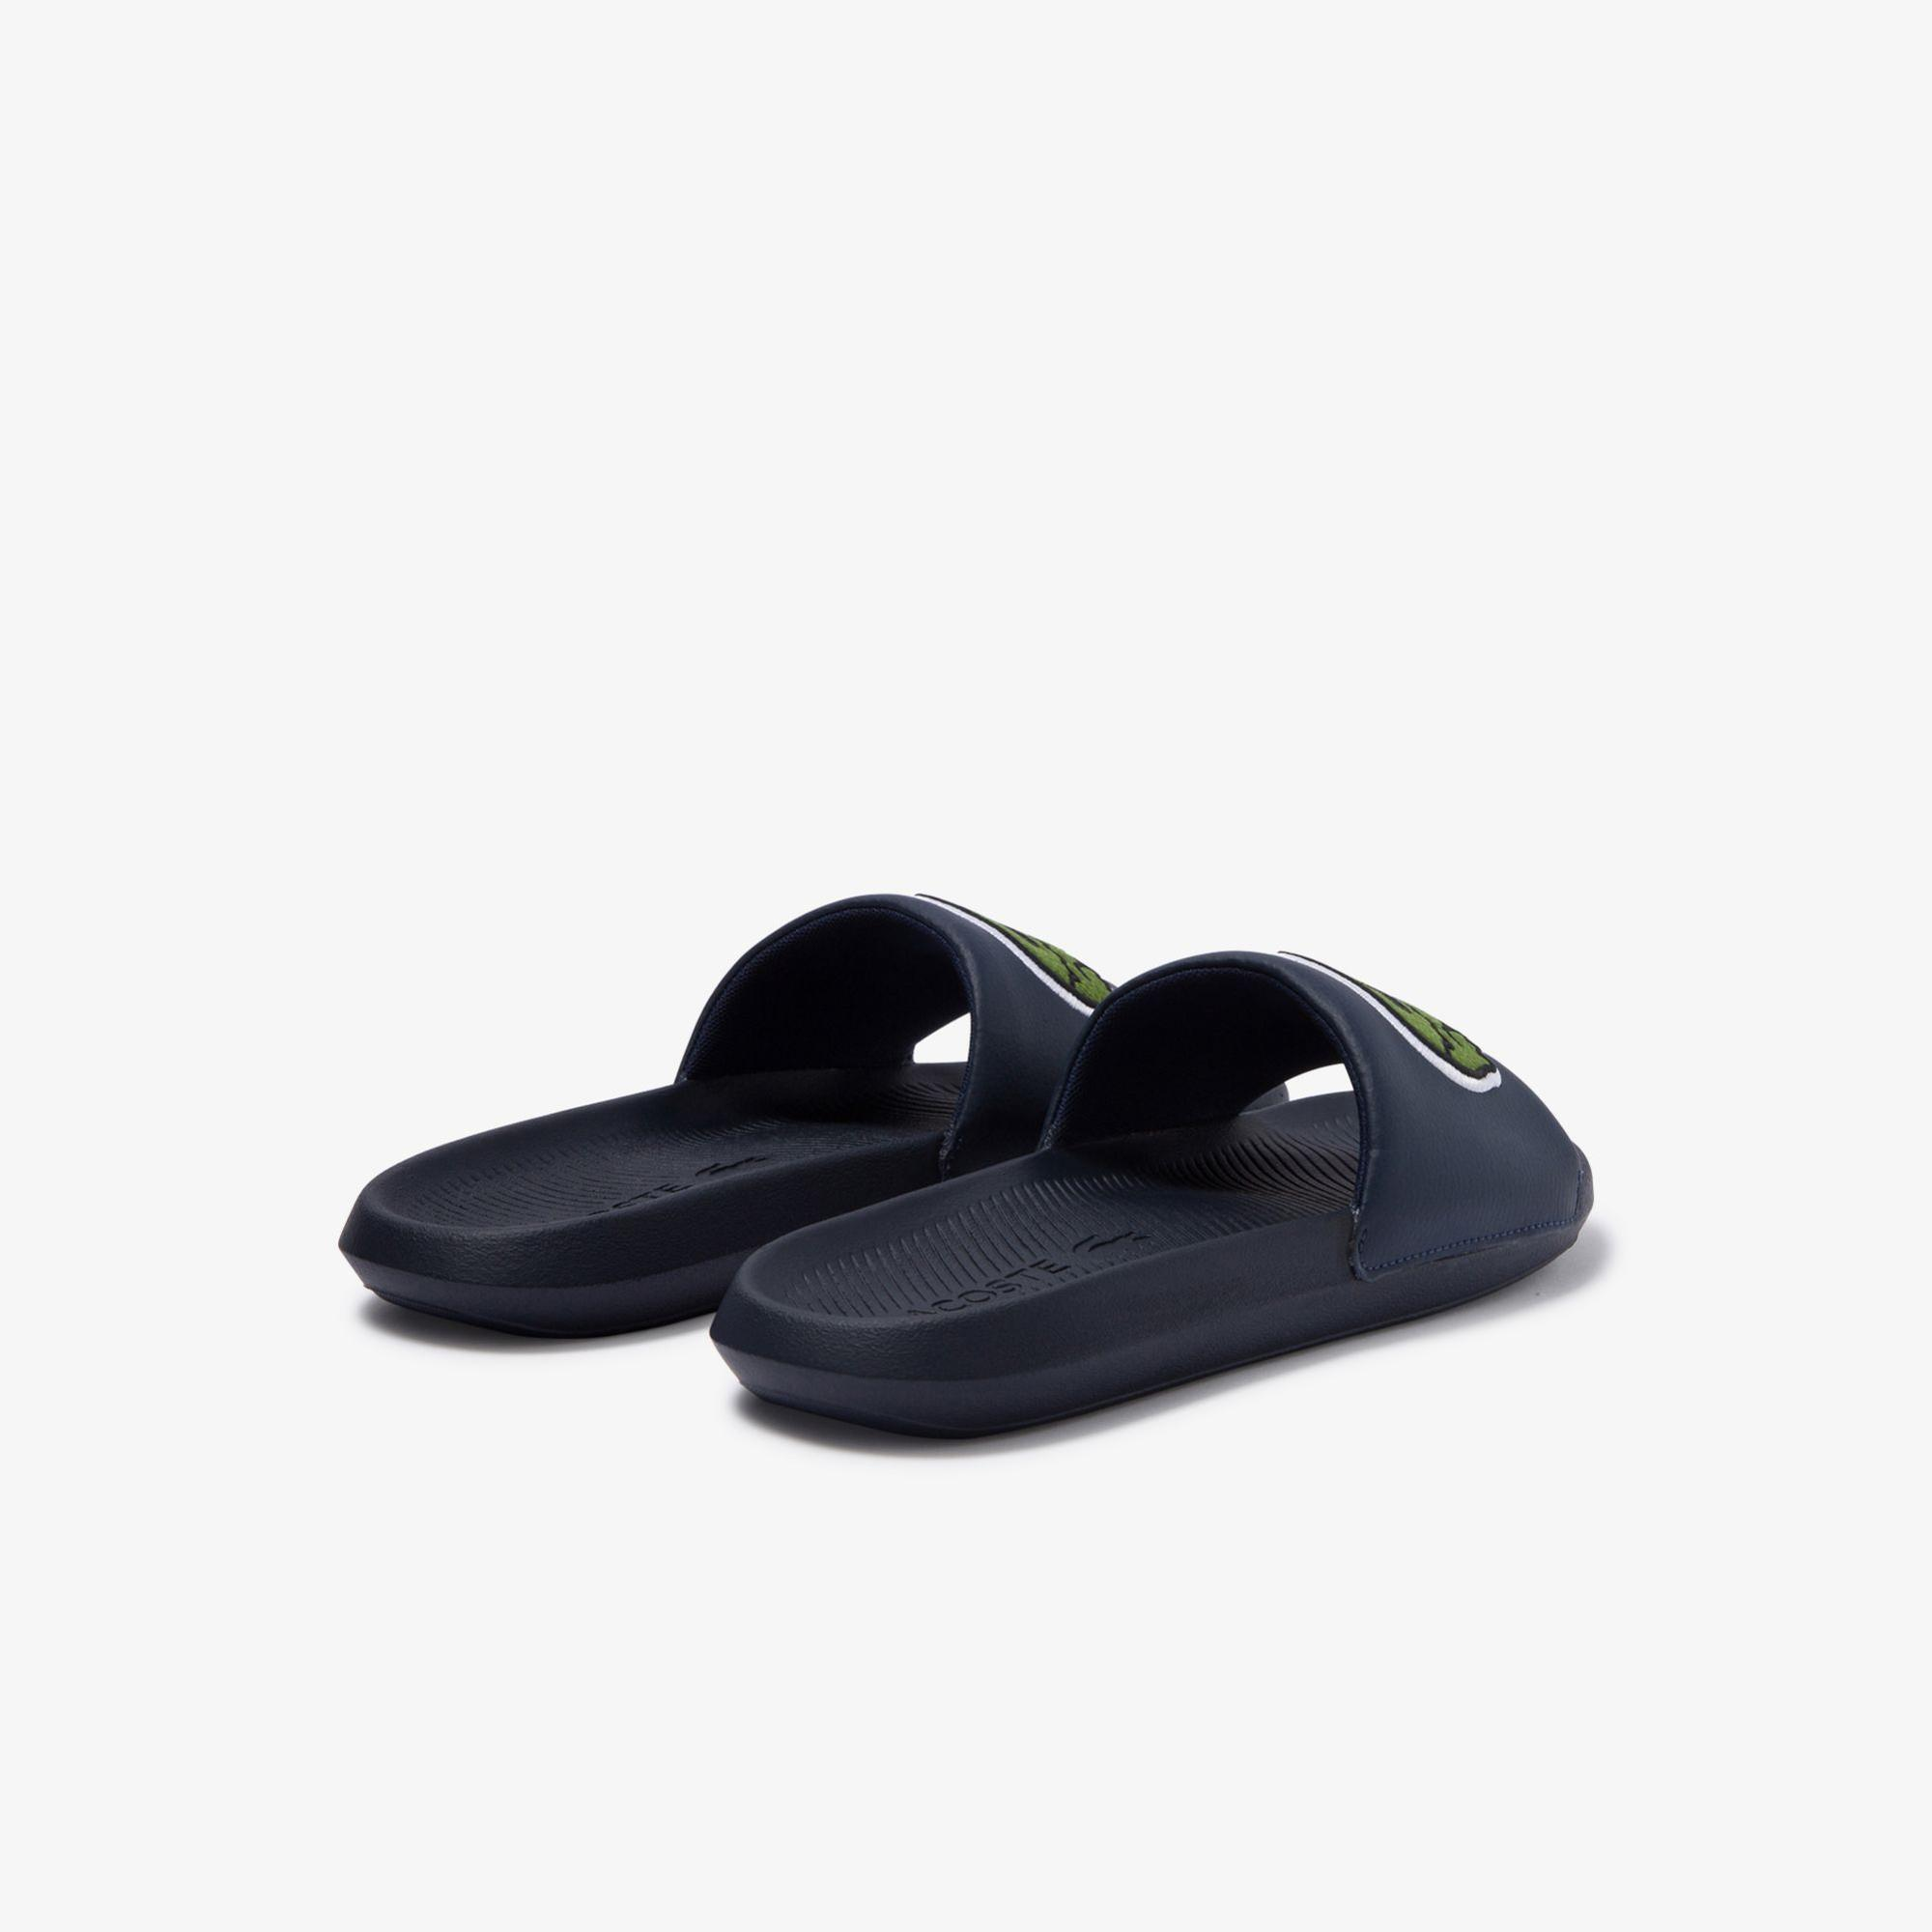 Lacoste Men's Croco Synthetic and PU Slides